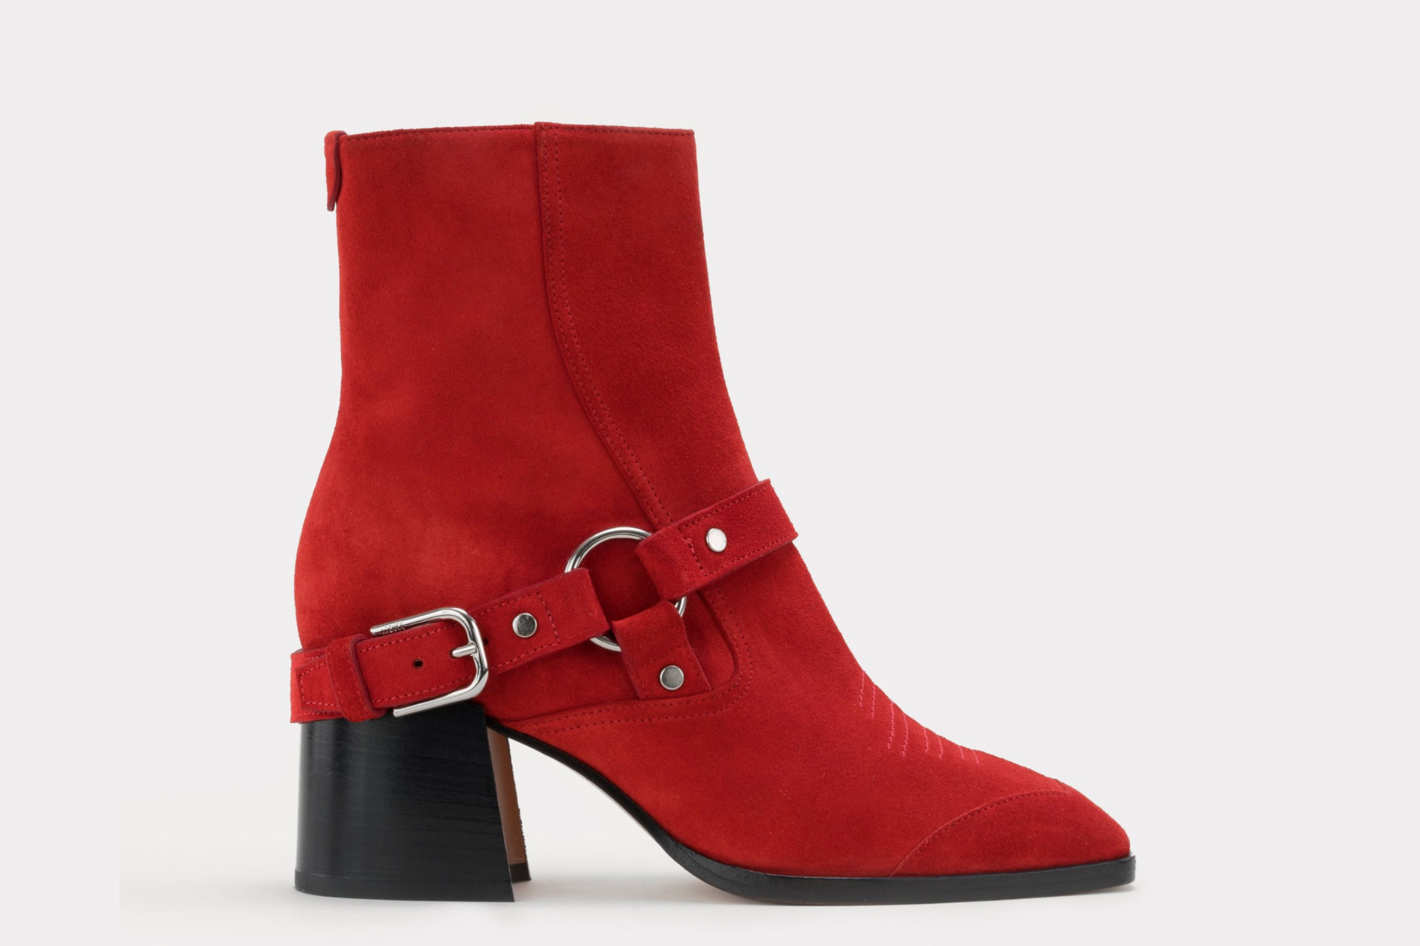 June harness boots in red suede